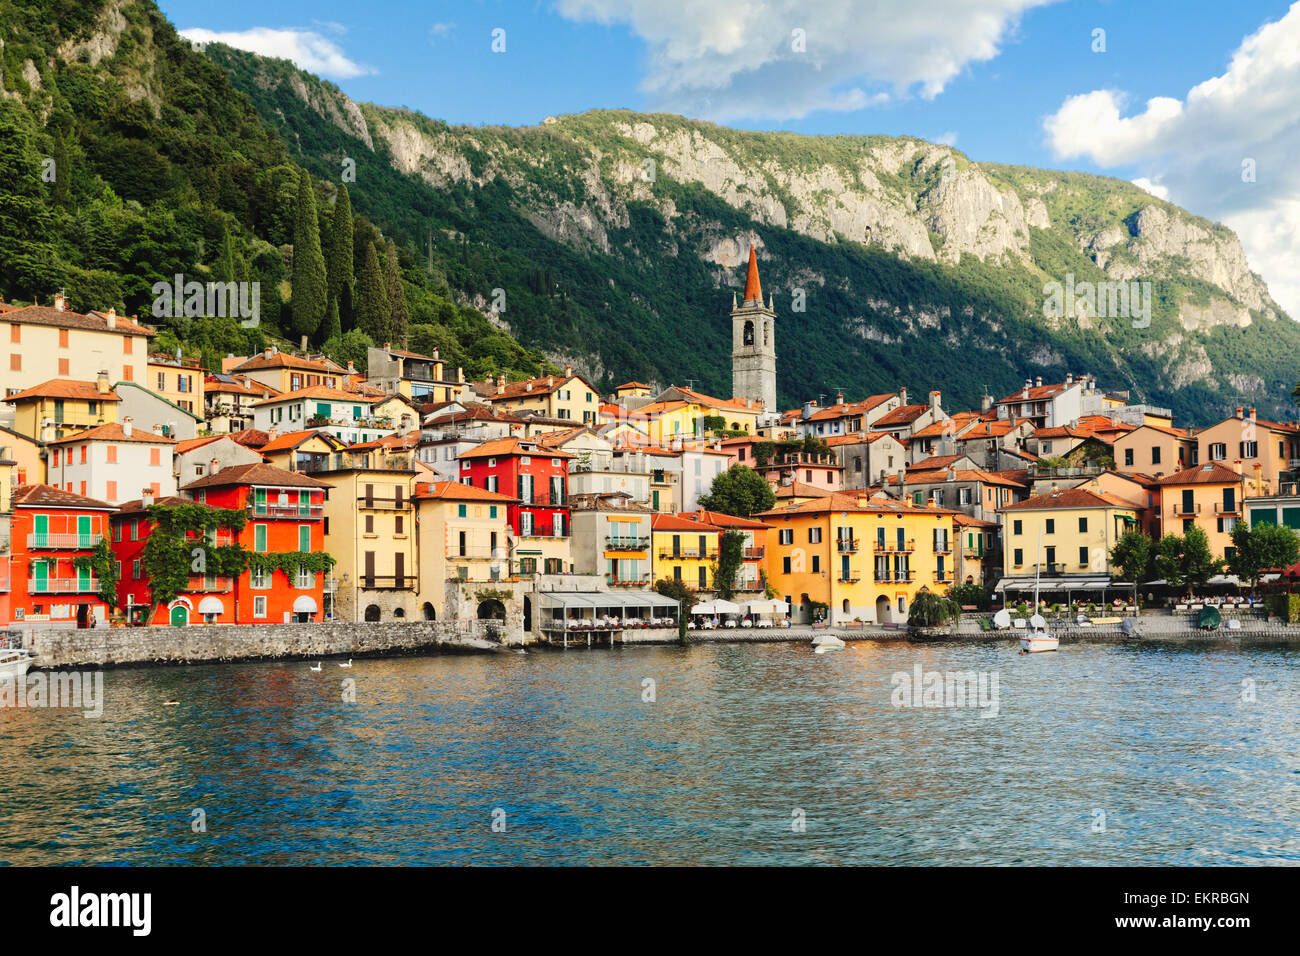 Low Angle View of a Small Town on a Lake, Varenna, Lake Como, Lombardy, Italy - Stock Image